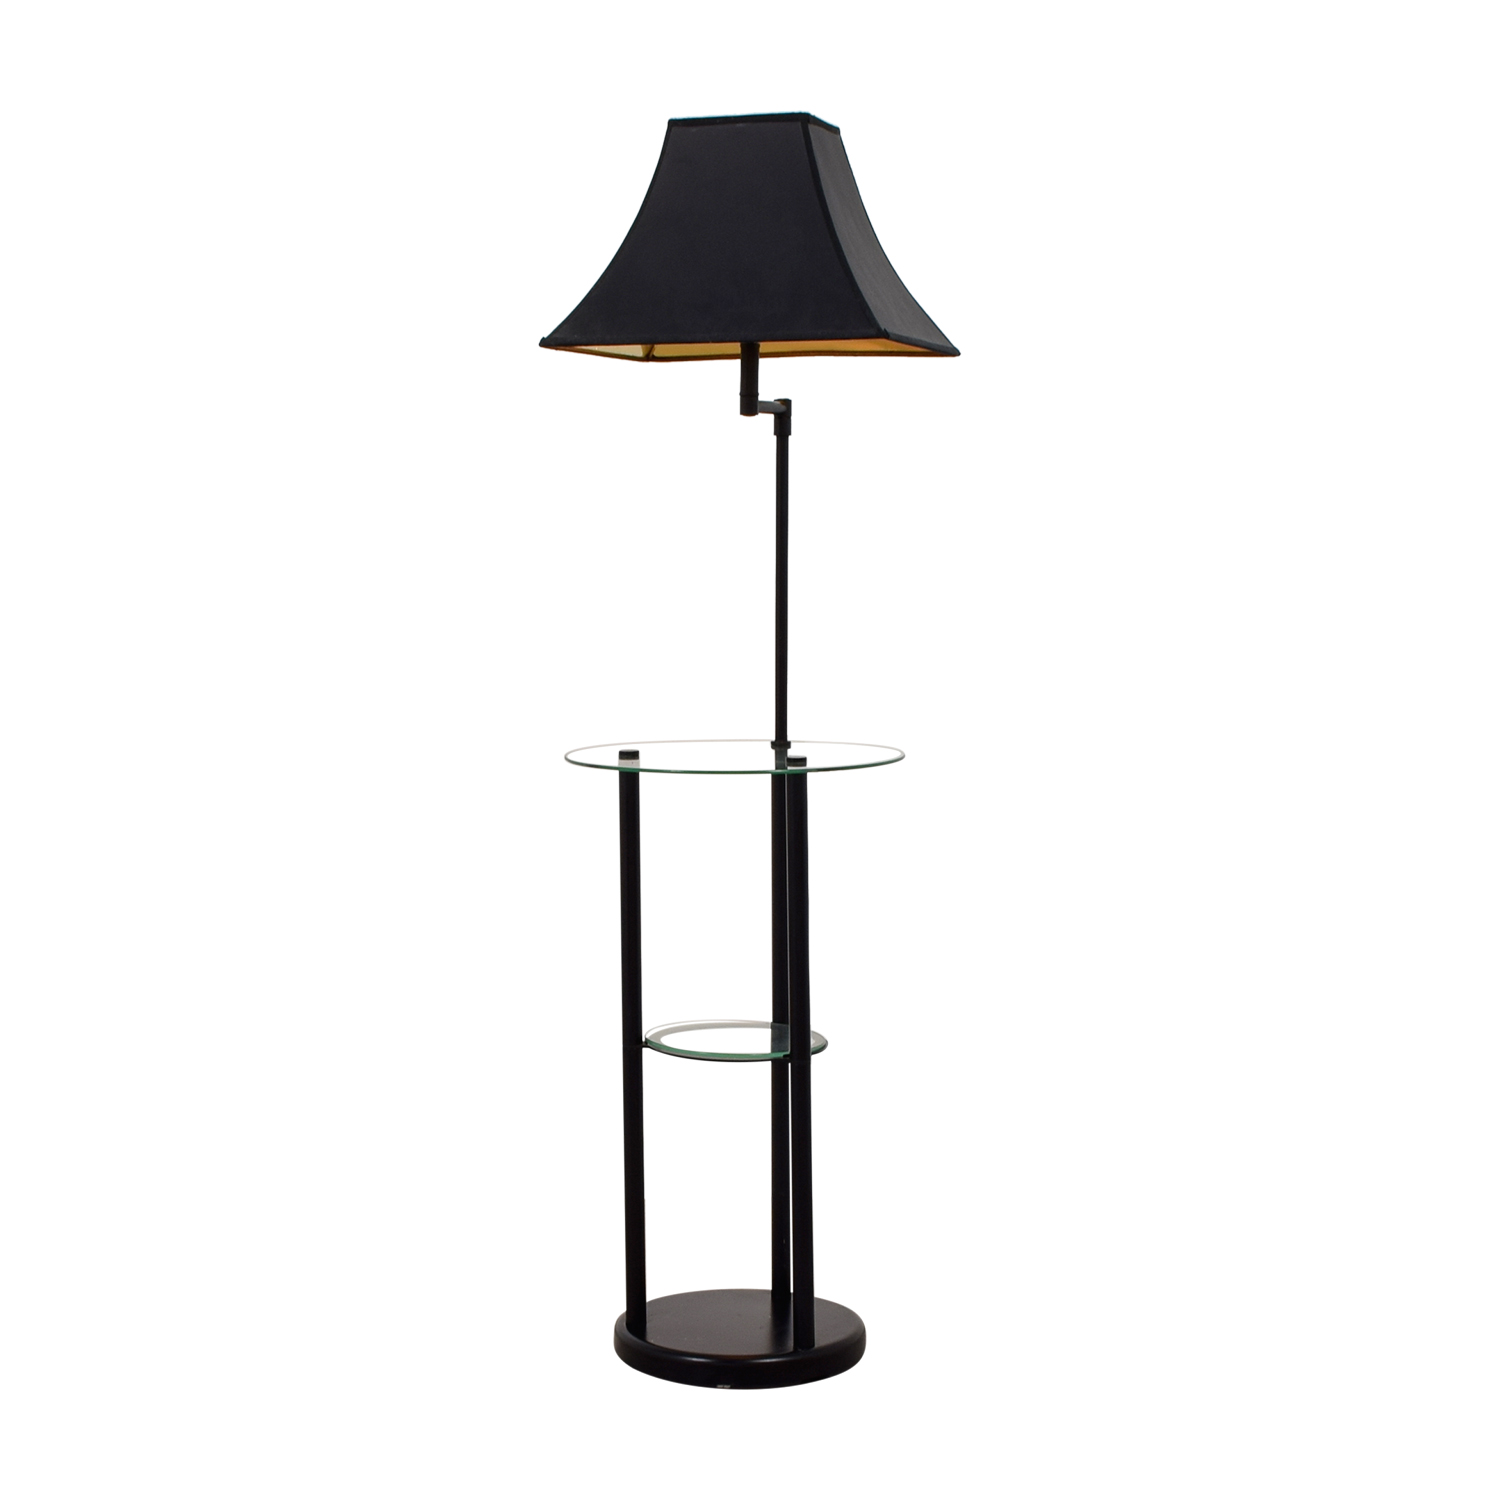 Glass Table Floor Lamp dimensions